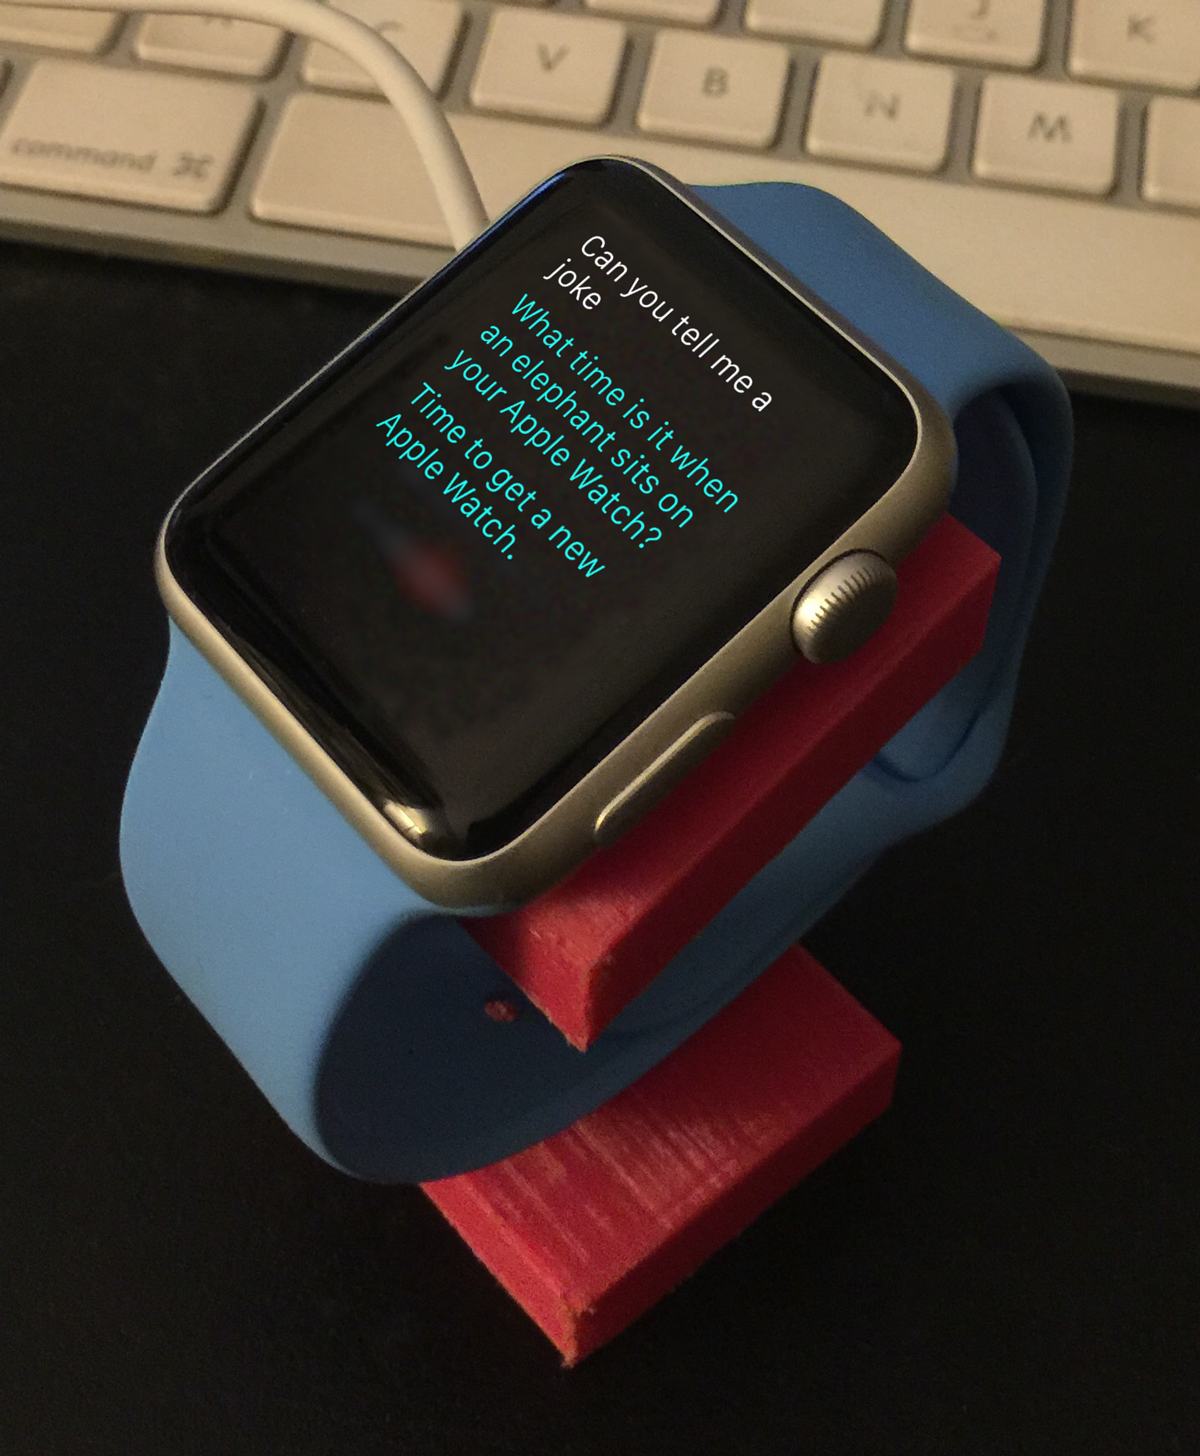 Episode 37 - Aaron's Apple Watch Strikes Out